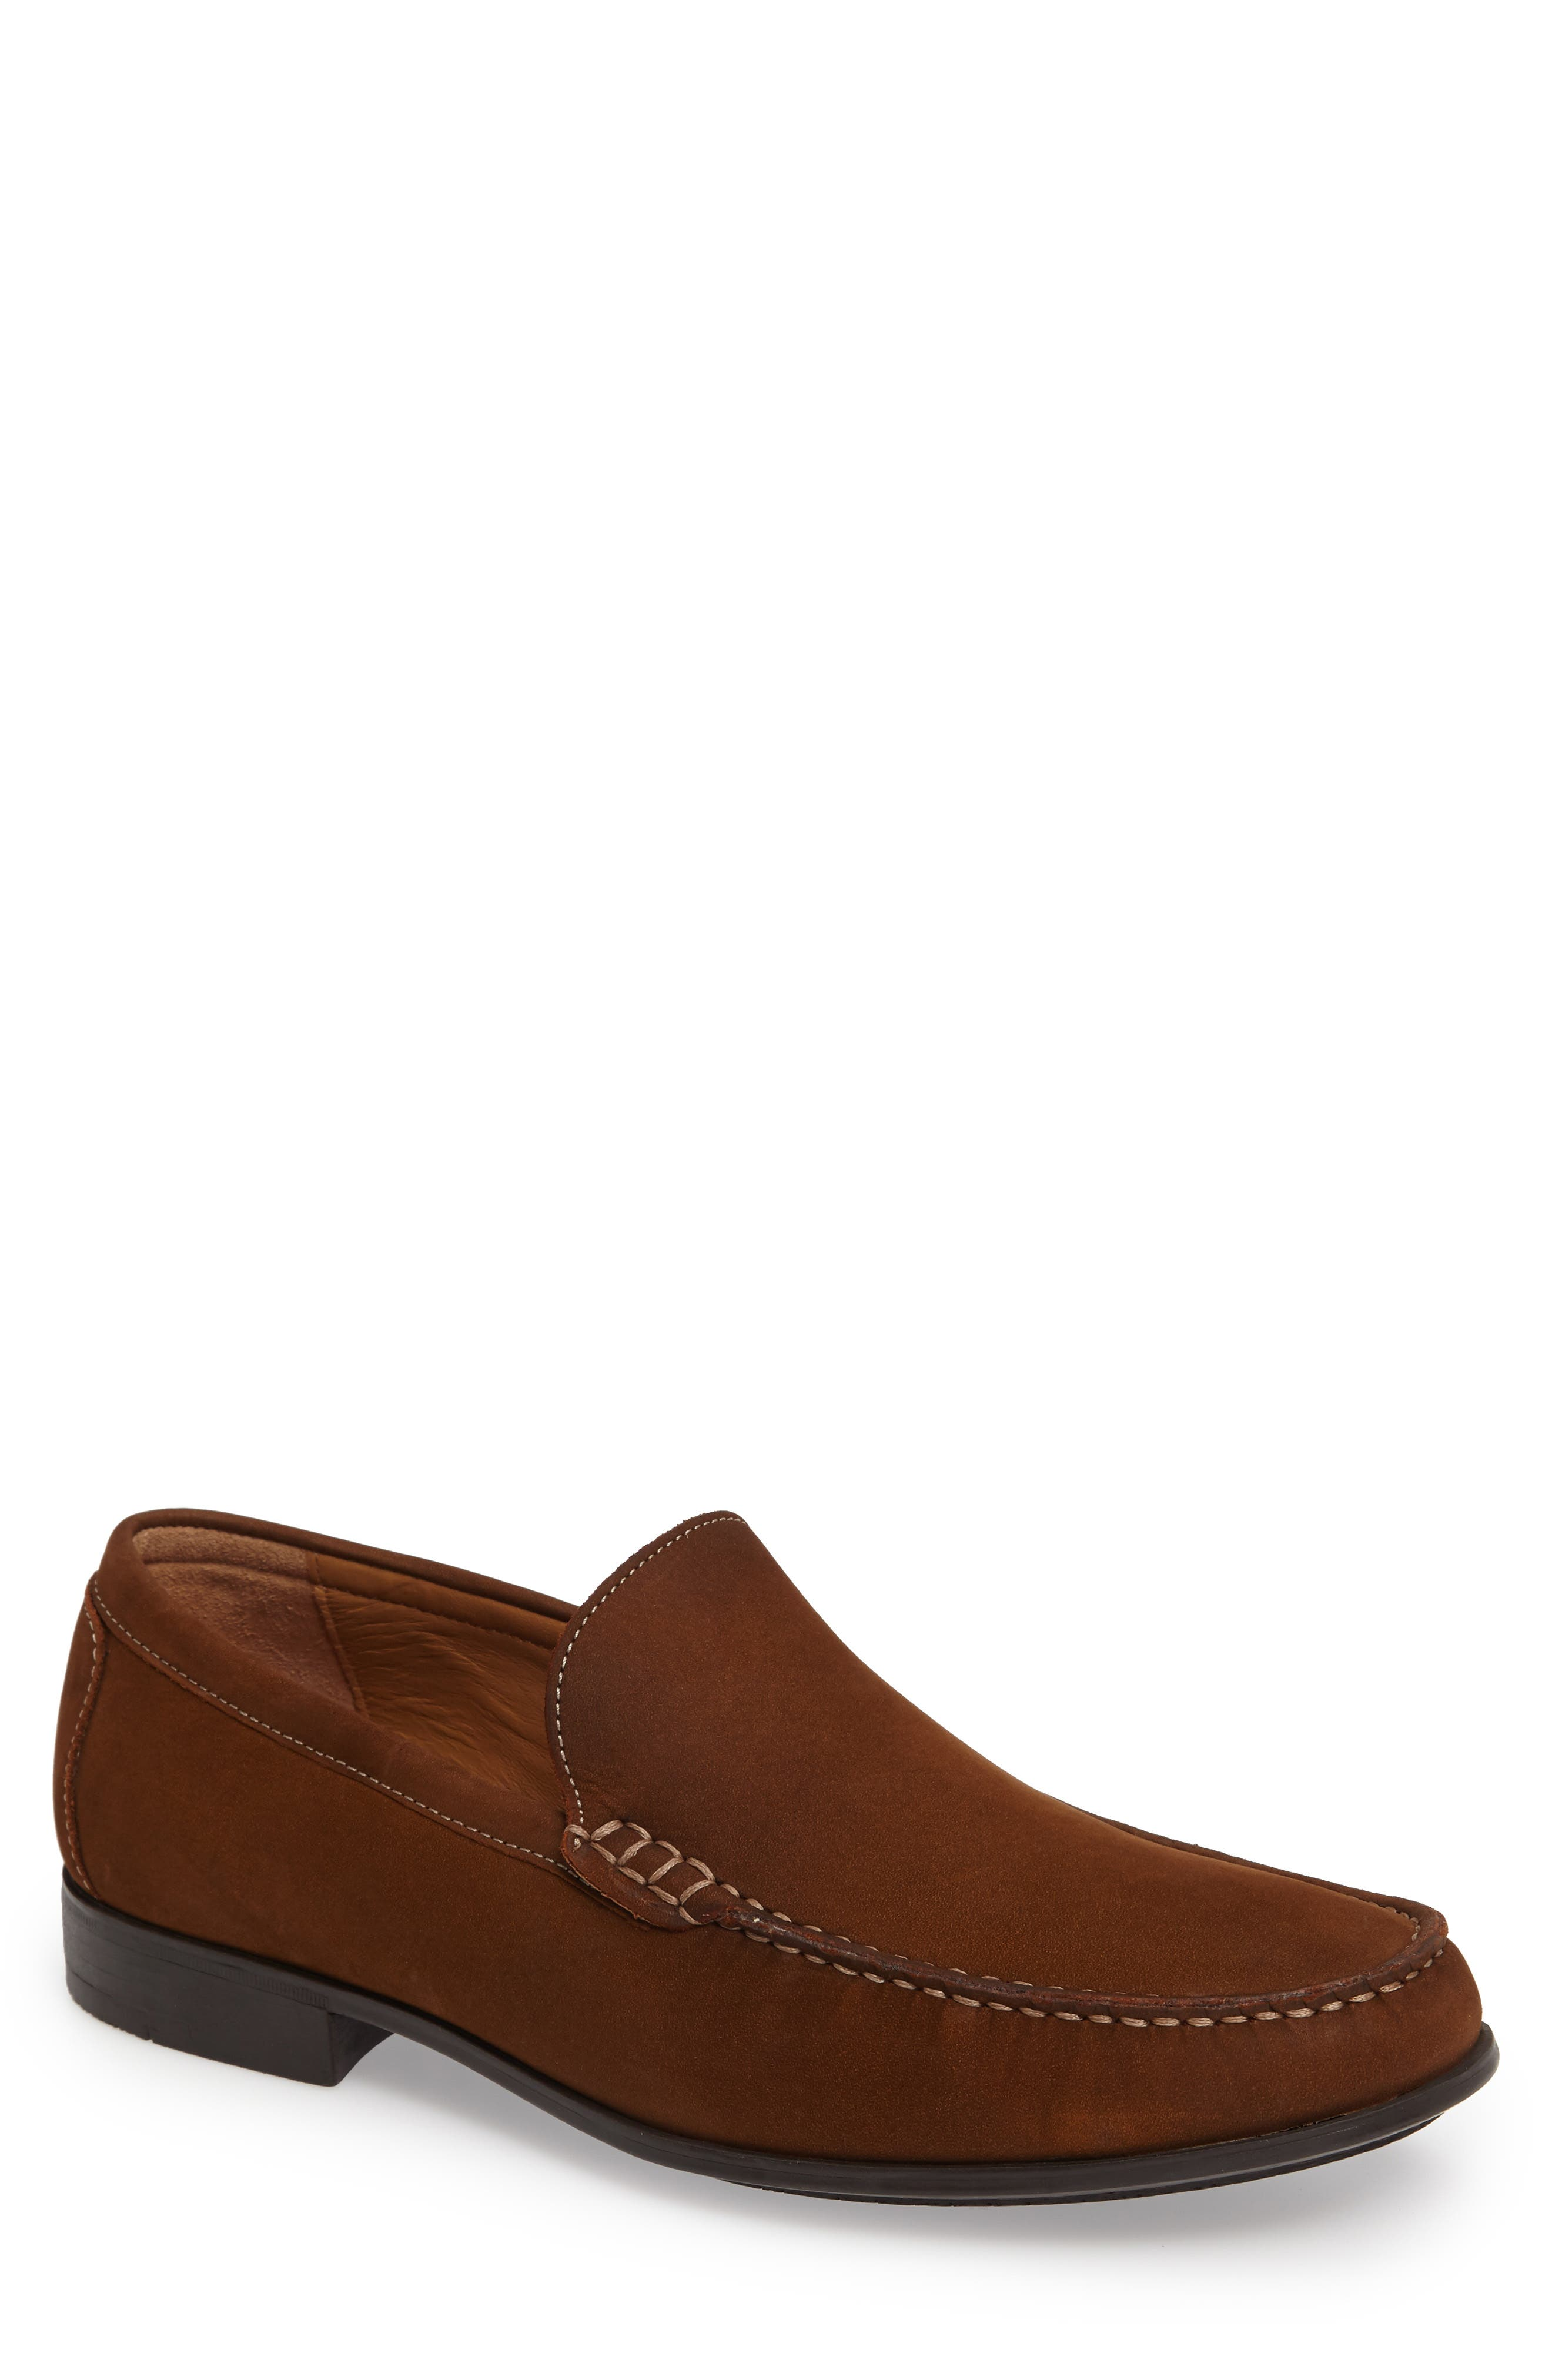 Cresswell Venetian Loafer,                             Main thumbnail 3, color,